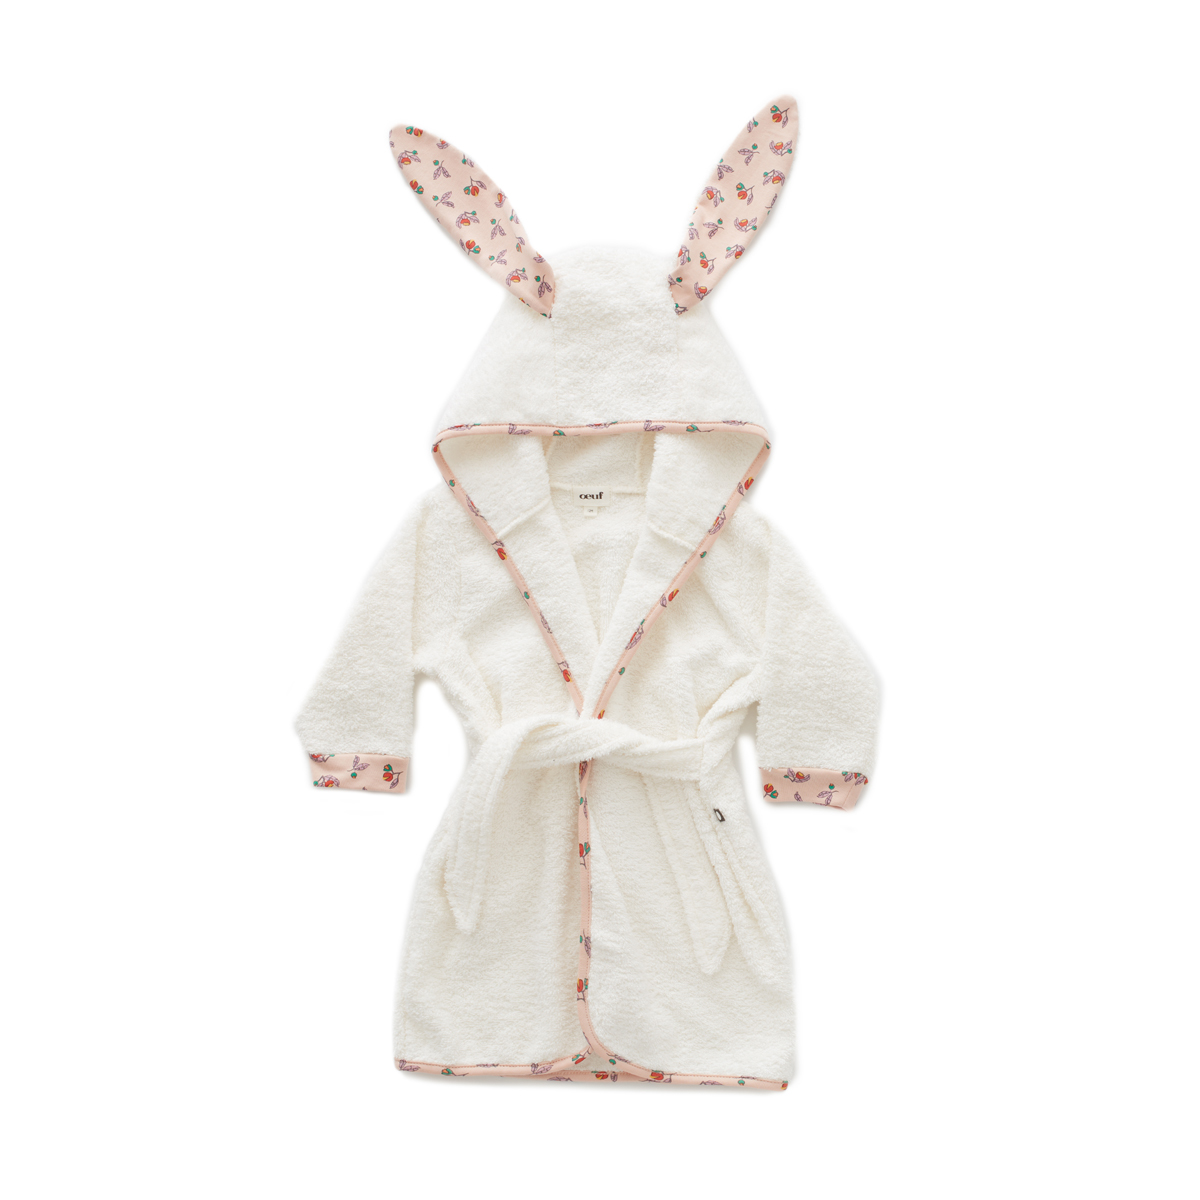 Oeuf Bunny Robe in Small Flower